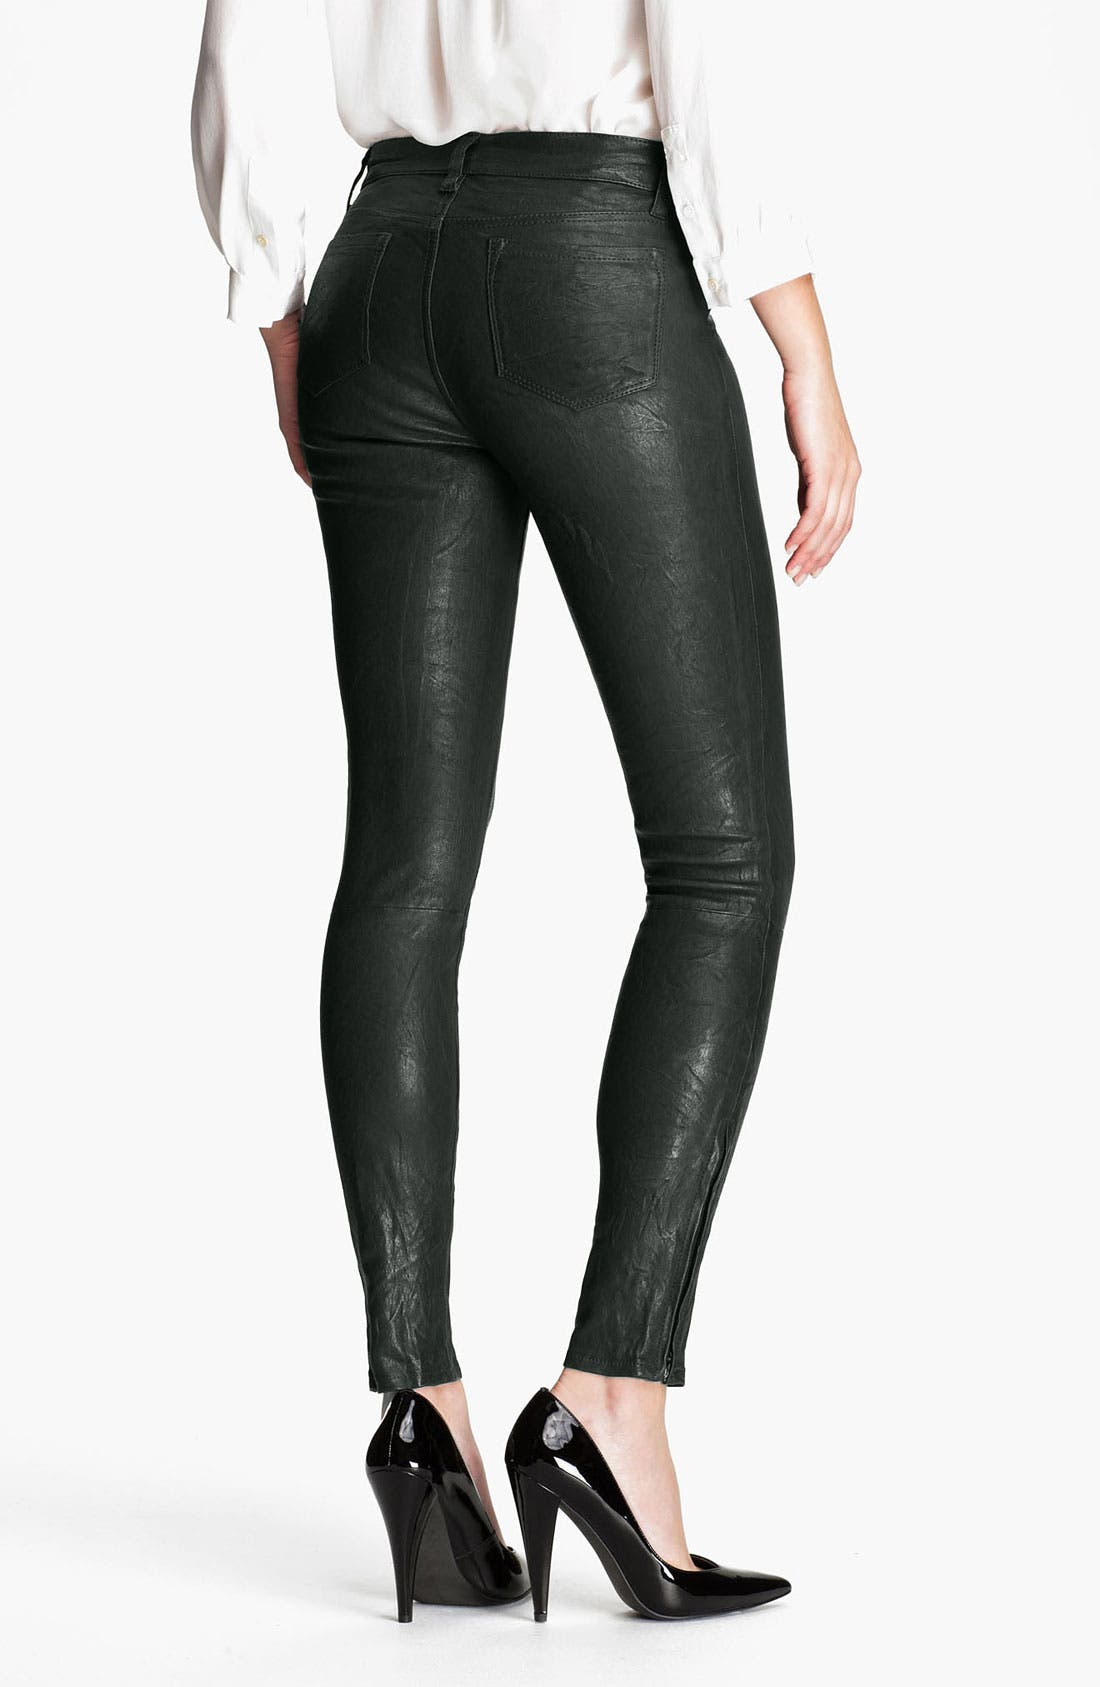 '8001' Lambskin Leather Pants,                             Alternate thumbnail 2, color,                             Forest